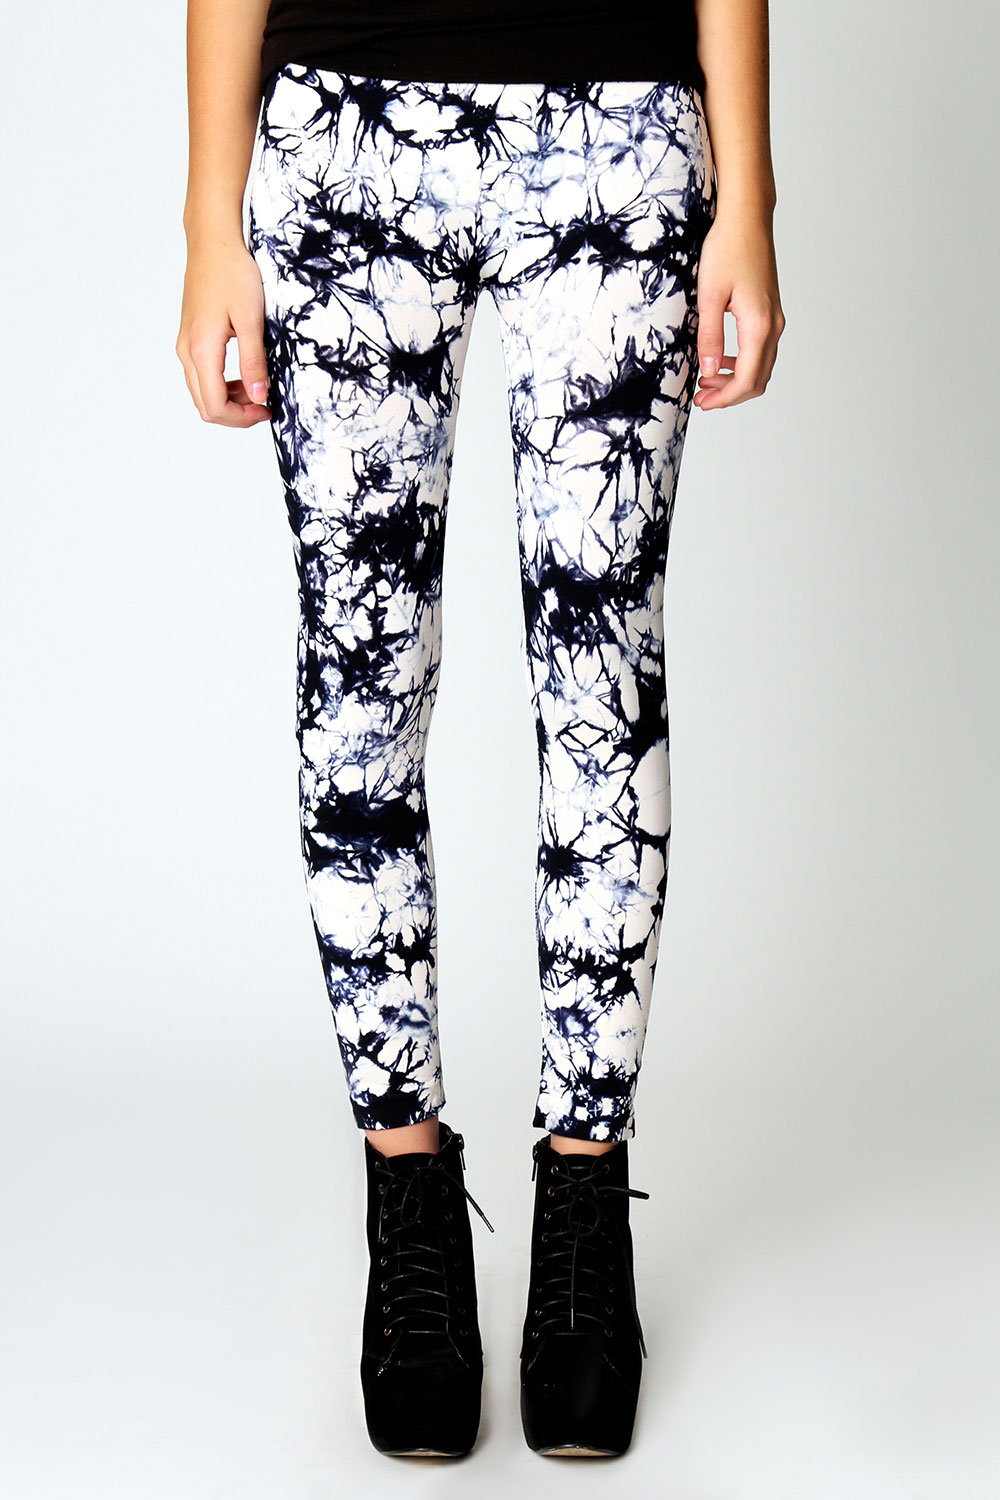 Boohoo Sadie All Over Tie Dye Leggings | eBay